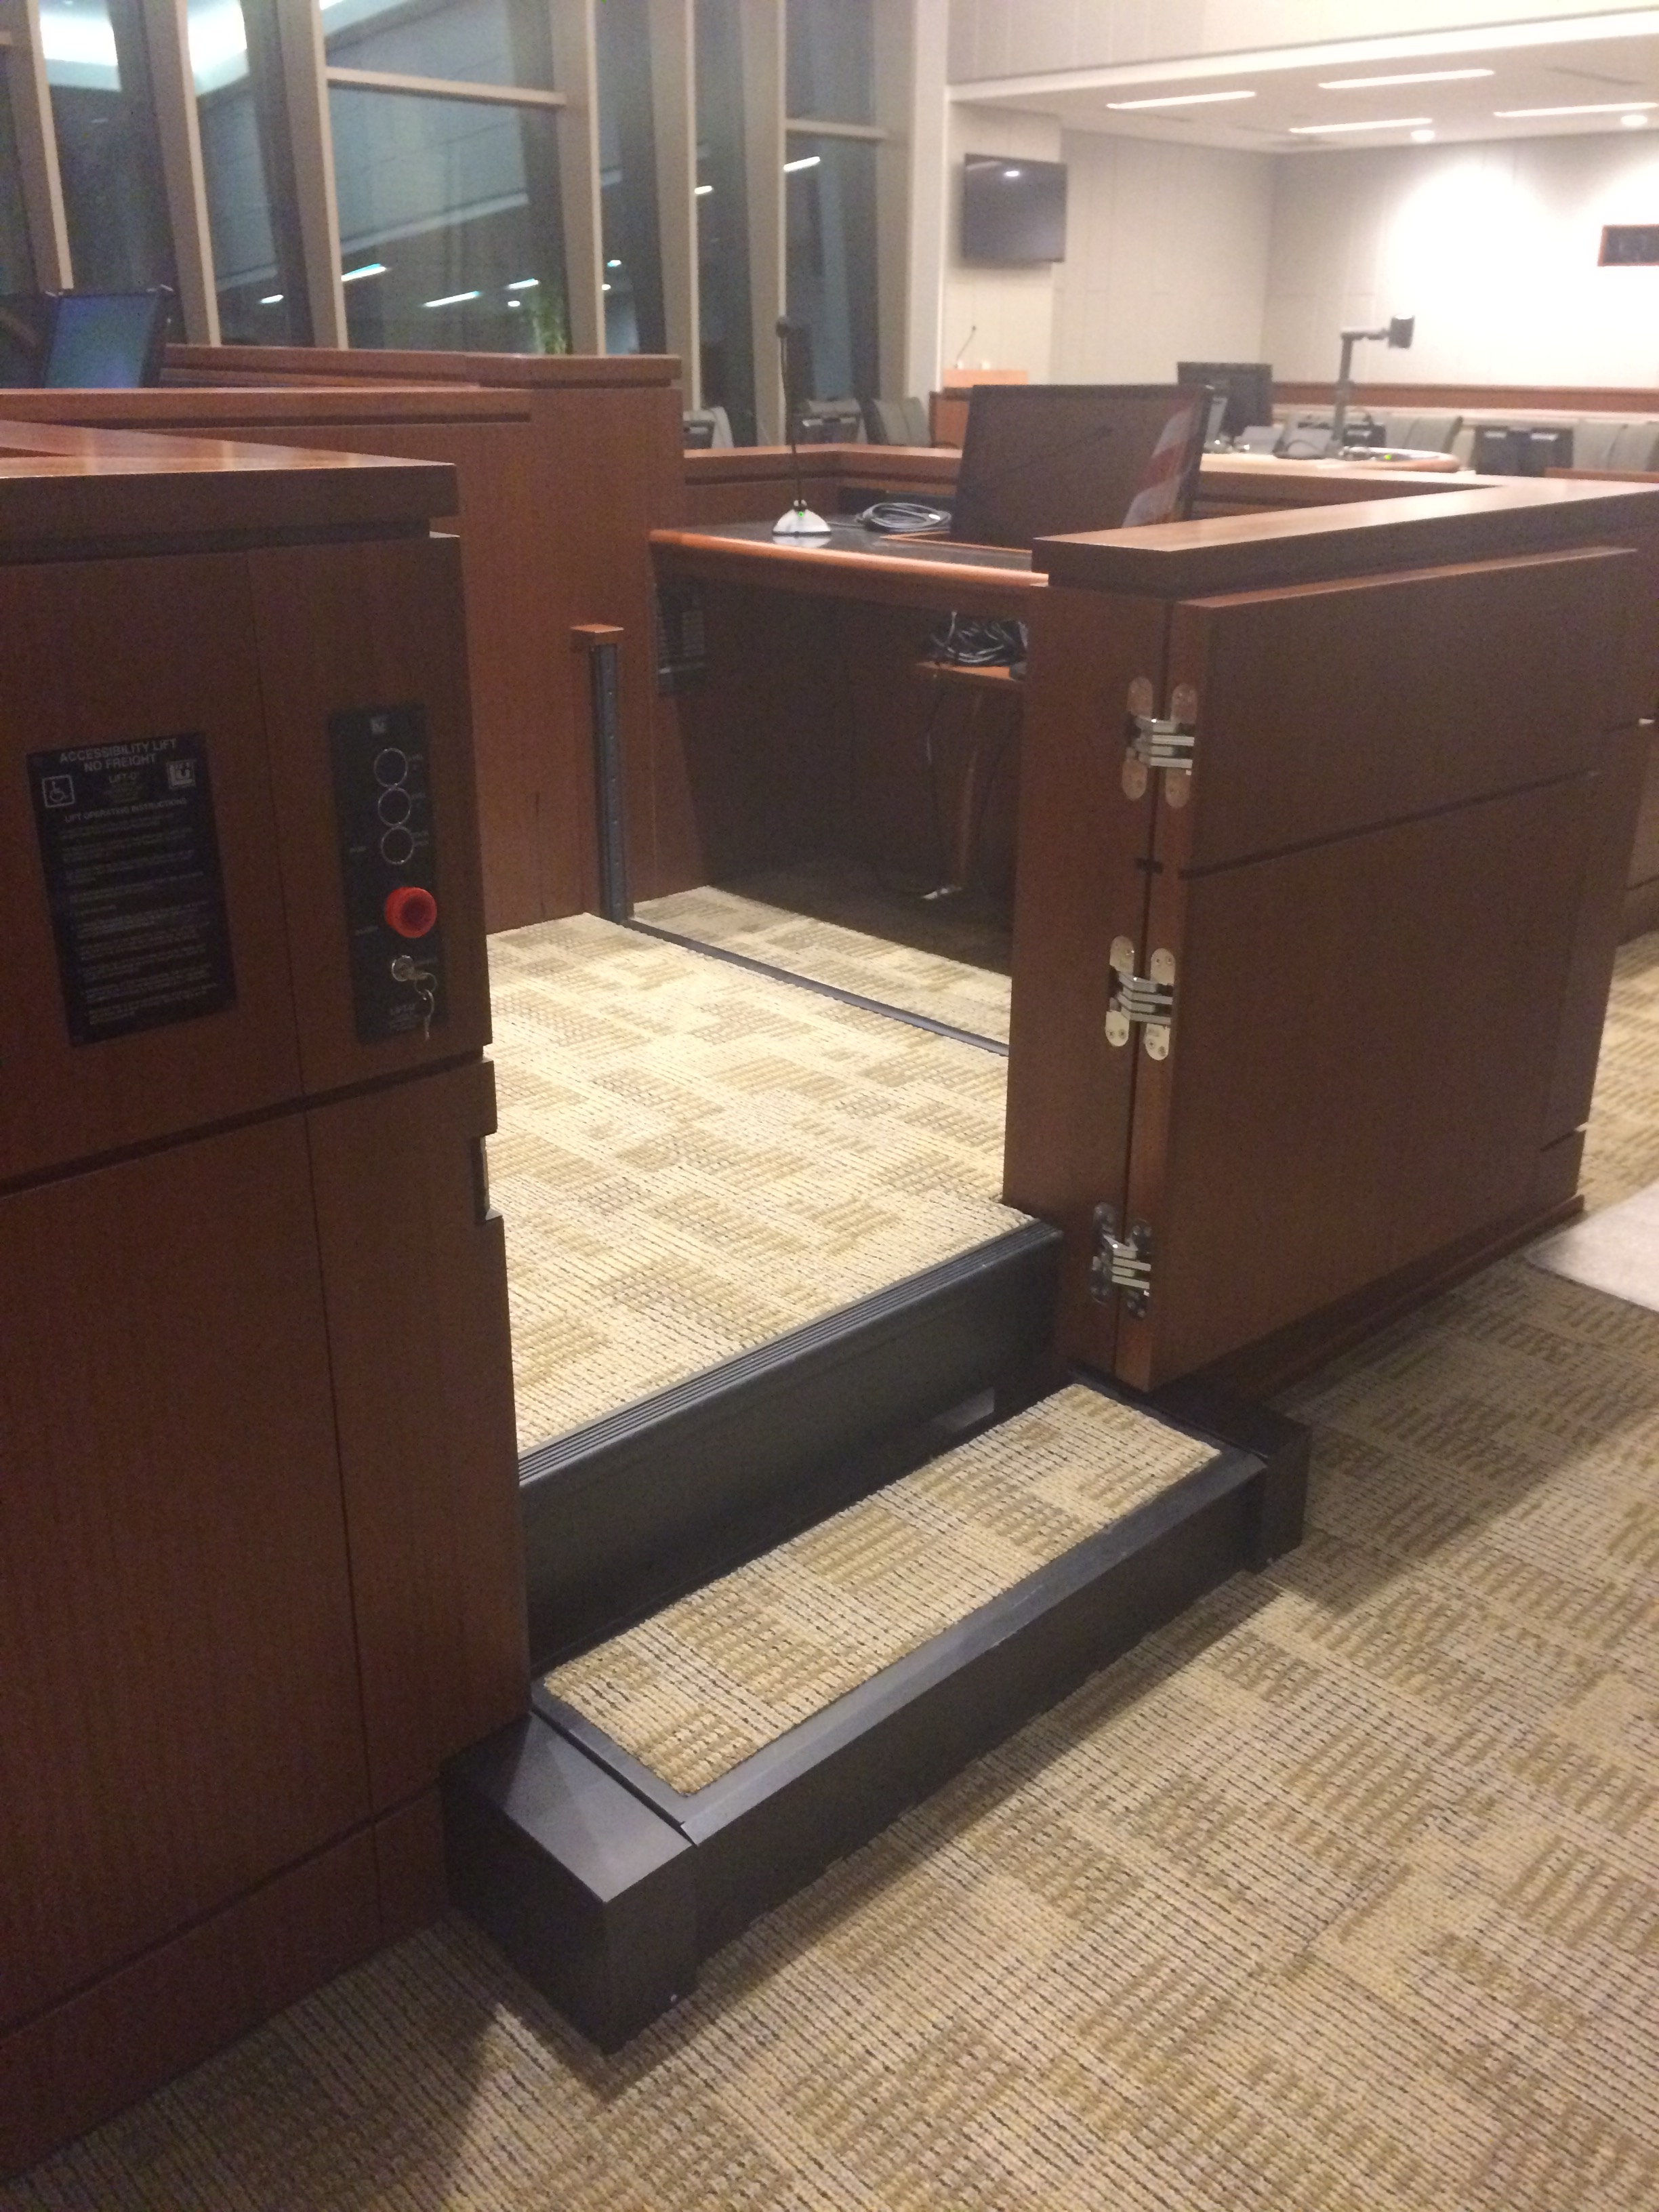 Witness lift positioned at witness level with lower level door opened. Equipped with operable step to allow ambulatory access. Lift encased in wood millwork blending in with courtroom millwork. Lift is readily available and independently operable.